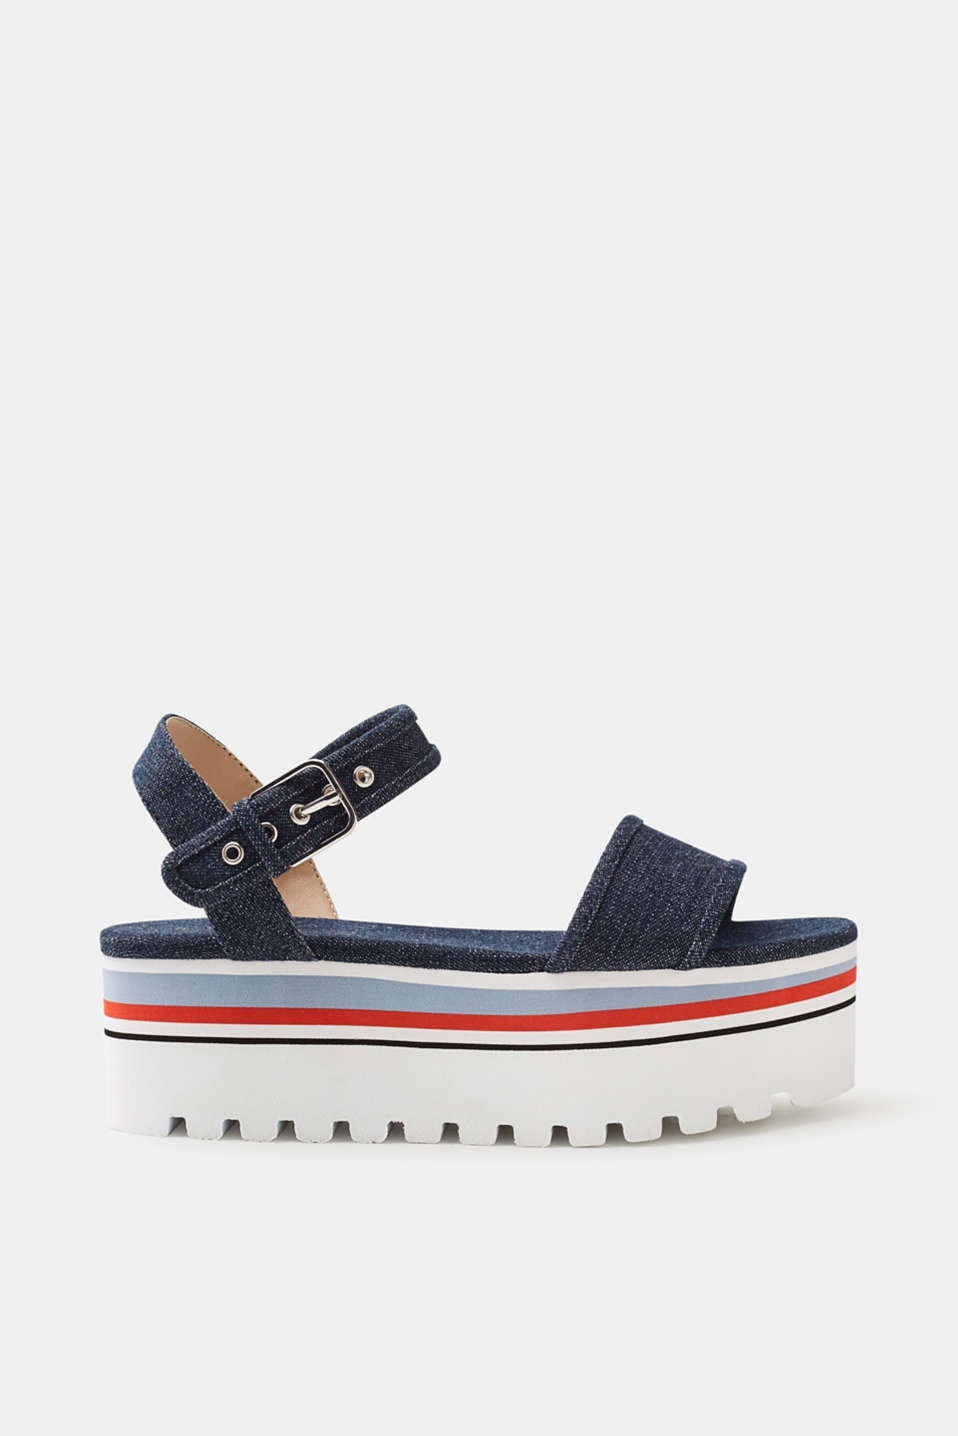 Esprit - Platform sandals in robust denim